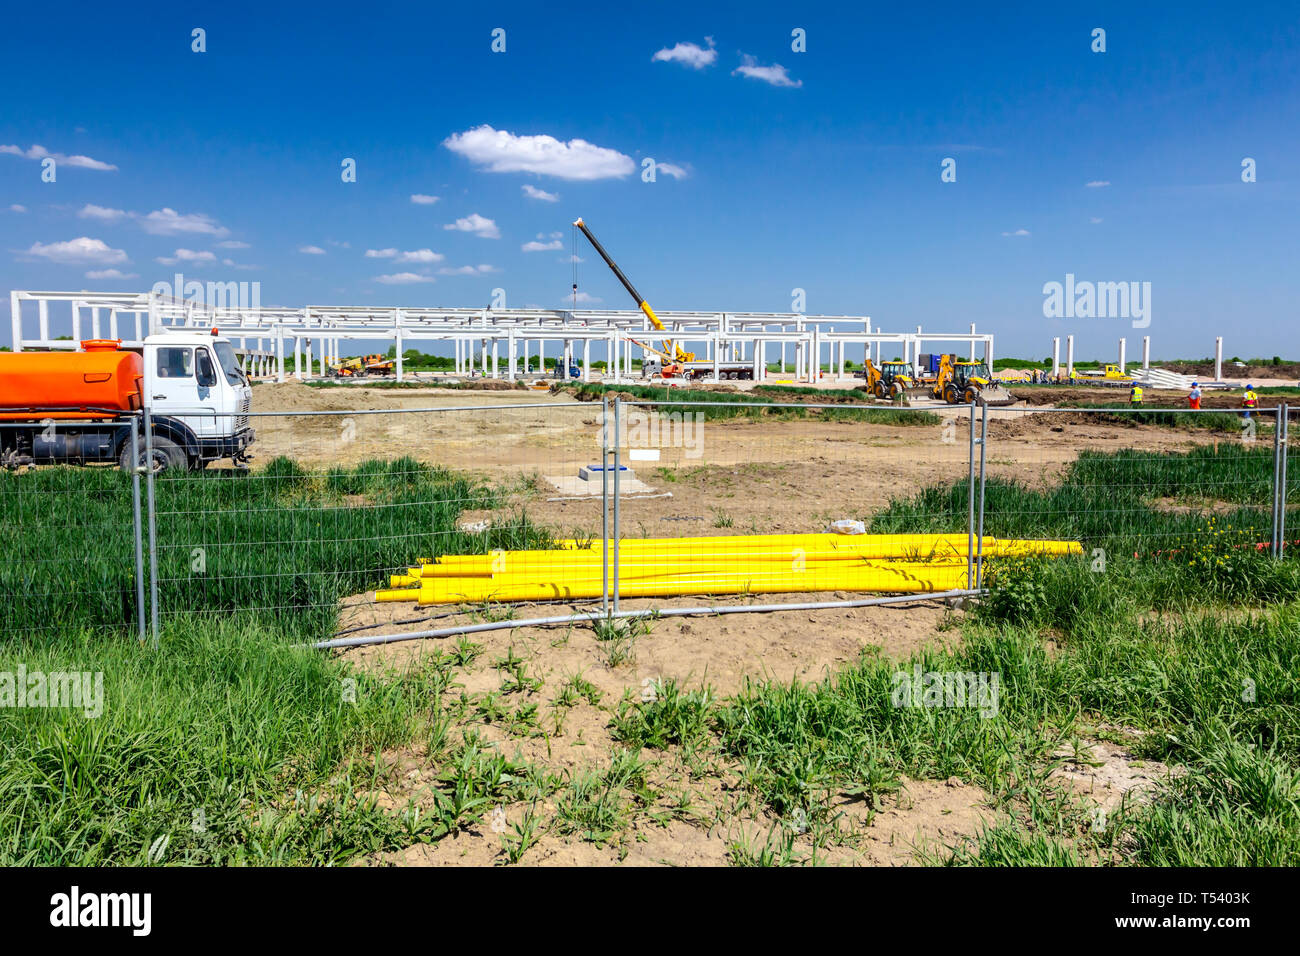 Landscape transform into urban area with machinery, people are working on unfinished modern edifice. View on construction site. Stock Photo